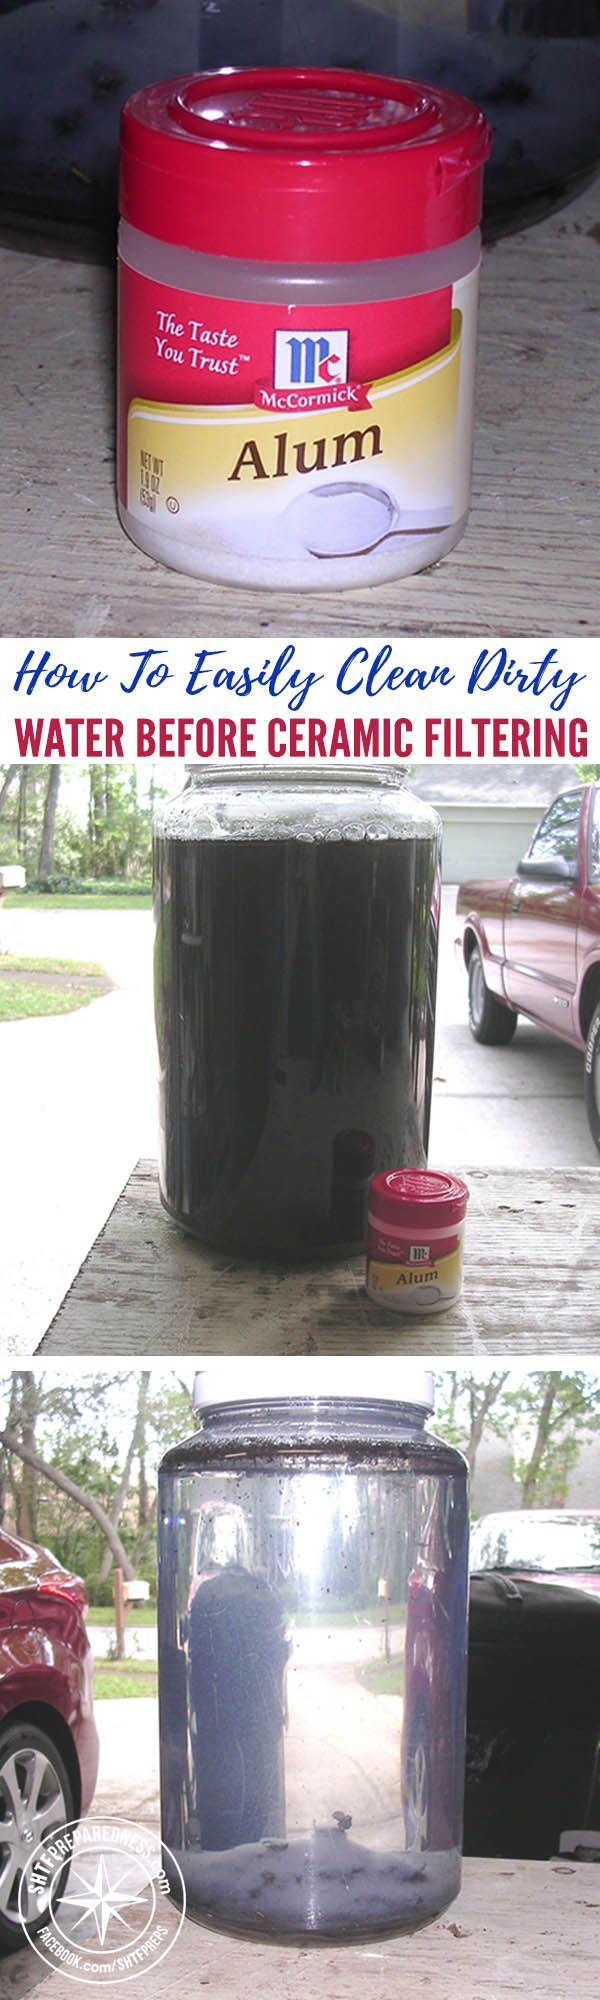 How To Easily Clean Dirty Water Before Ceramic Filtering — When you're in a survival situation, water supply is crucial since we can't live very long without it. There are some portable filters you can use in this situation, but not all of them are suitable for large quantities of water.